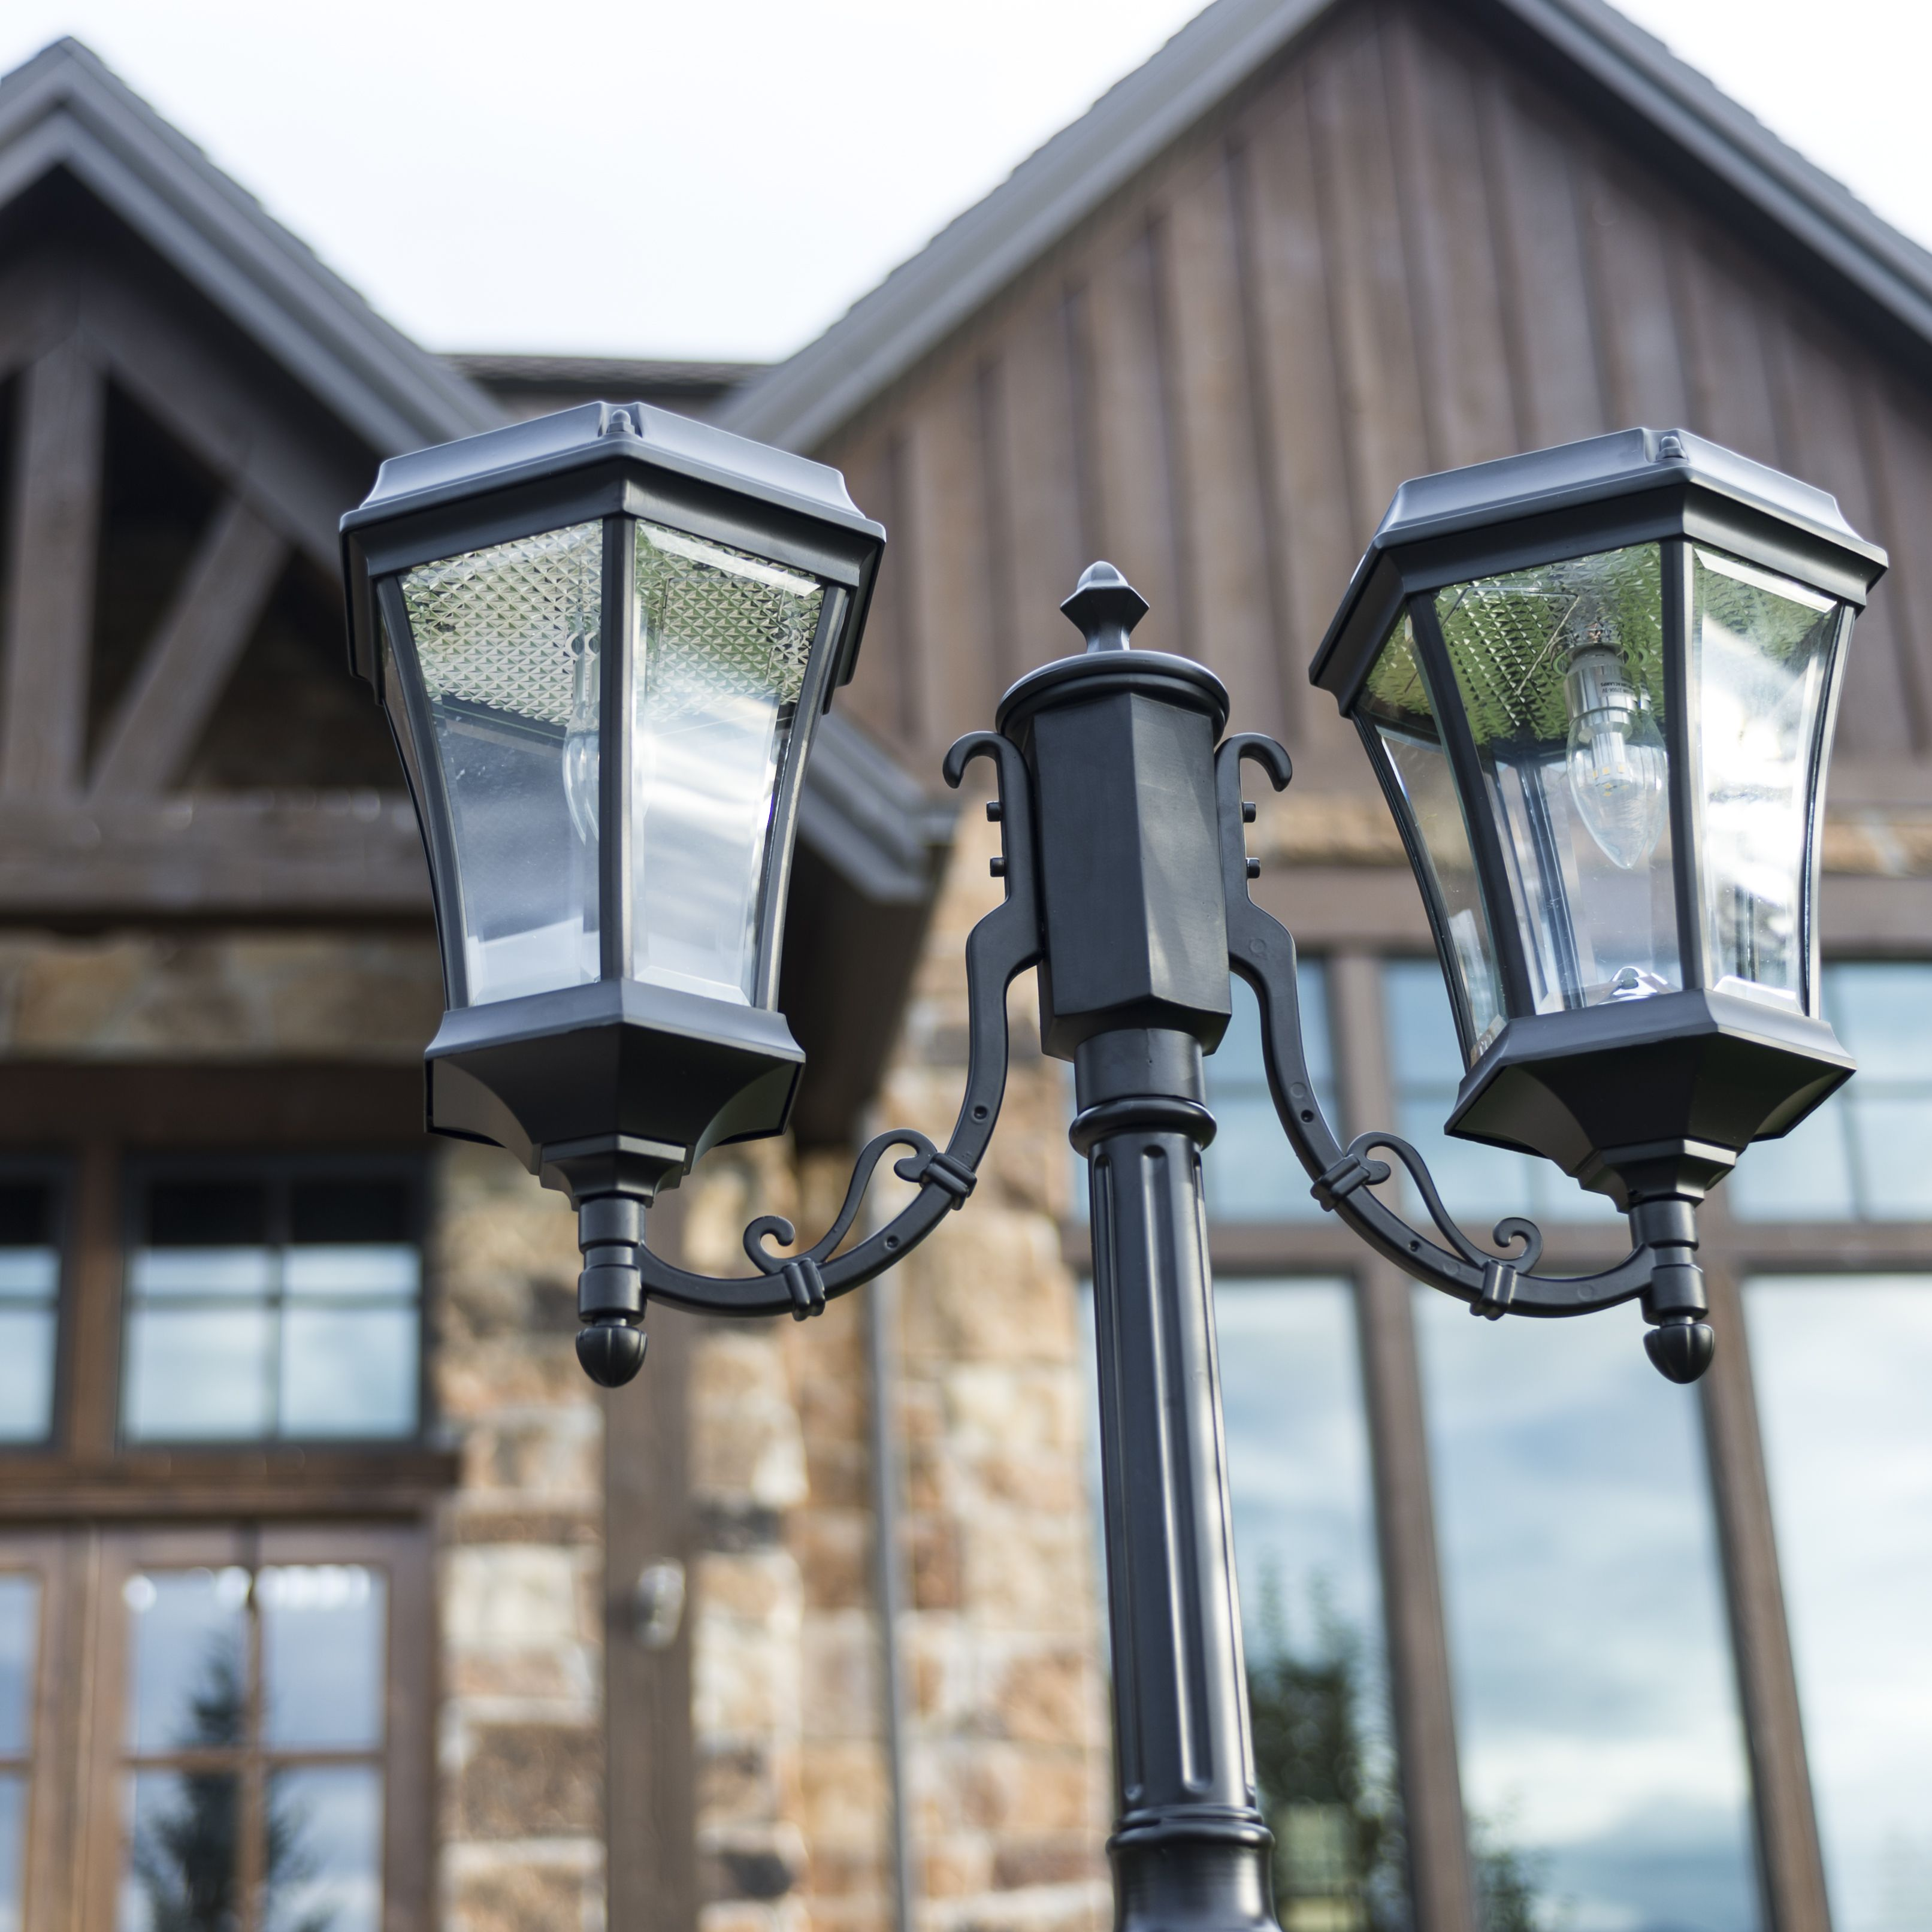 hight resolution of illuminate bright light with the elegant victorian bulb double solar lamp post this perfect diy solar lamp post requires no electrical wiring for